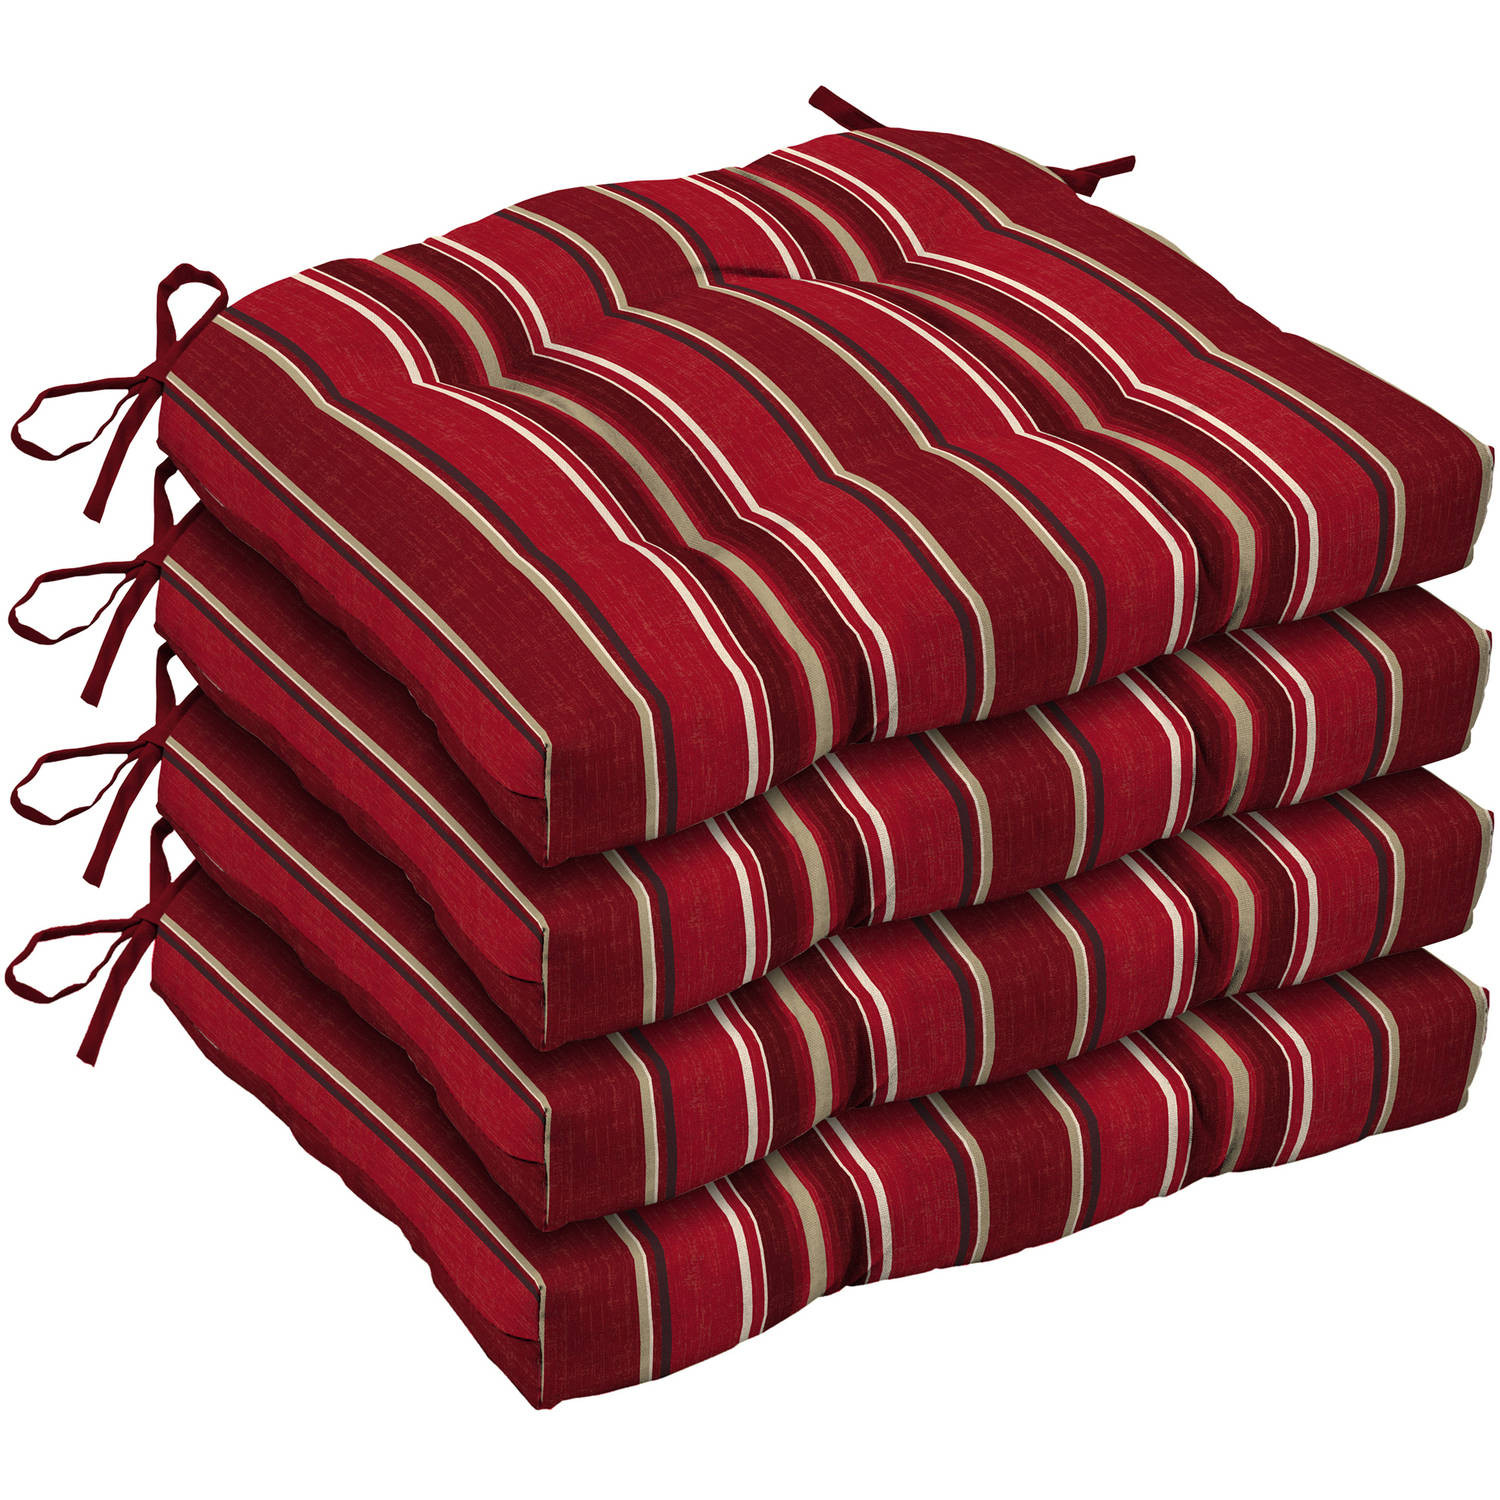 Best ideas about Better Homes And Gardens Patio Cushions . Save or Pin Better Homes and Gardens Outdoor Patio Deep Seat Cushion Now.